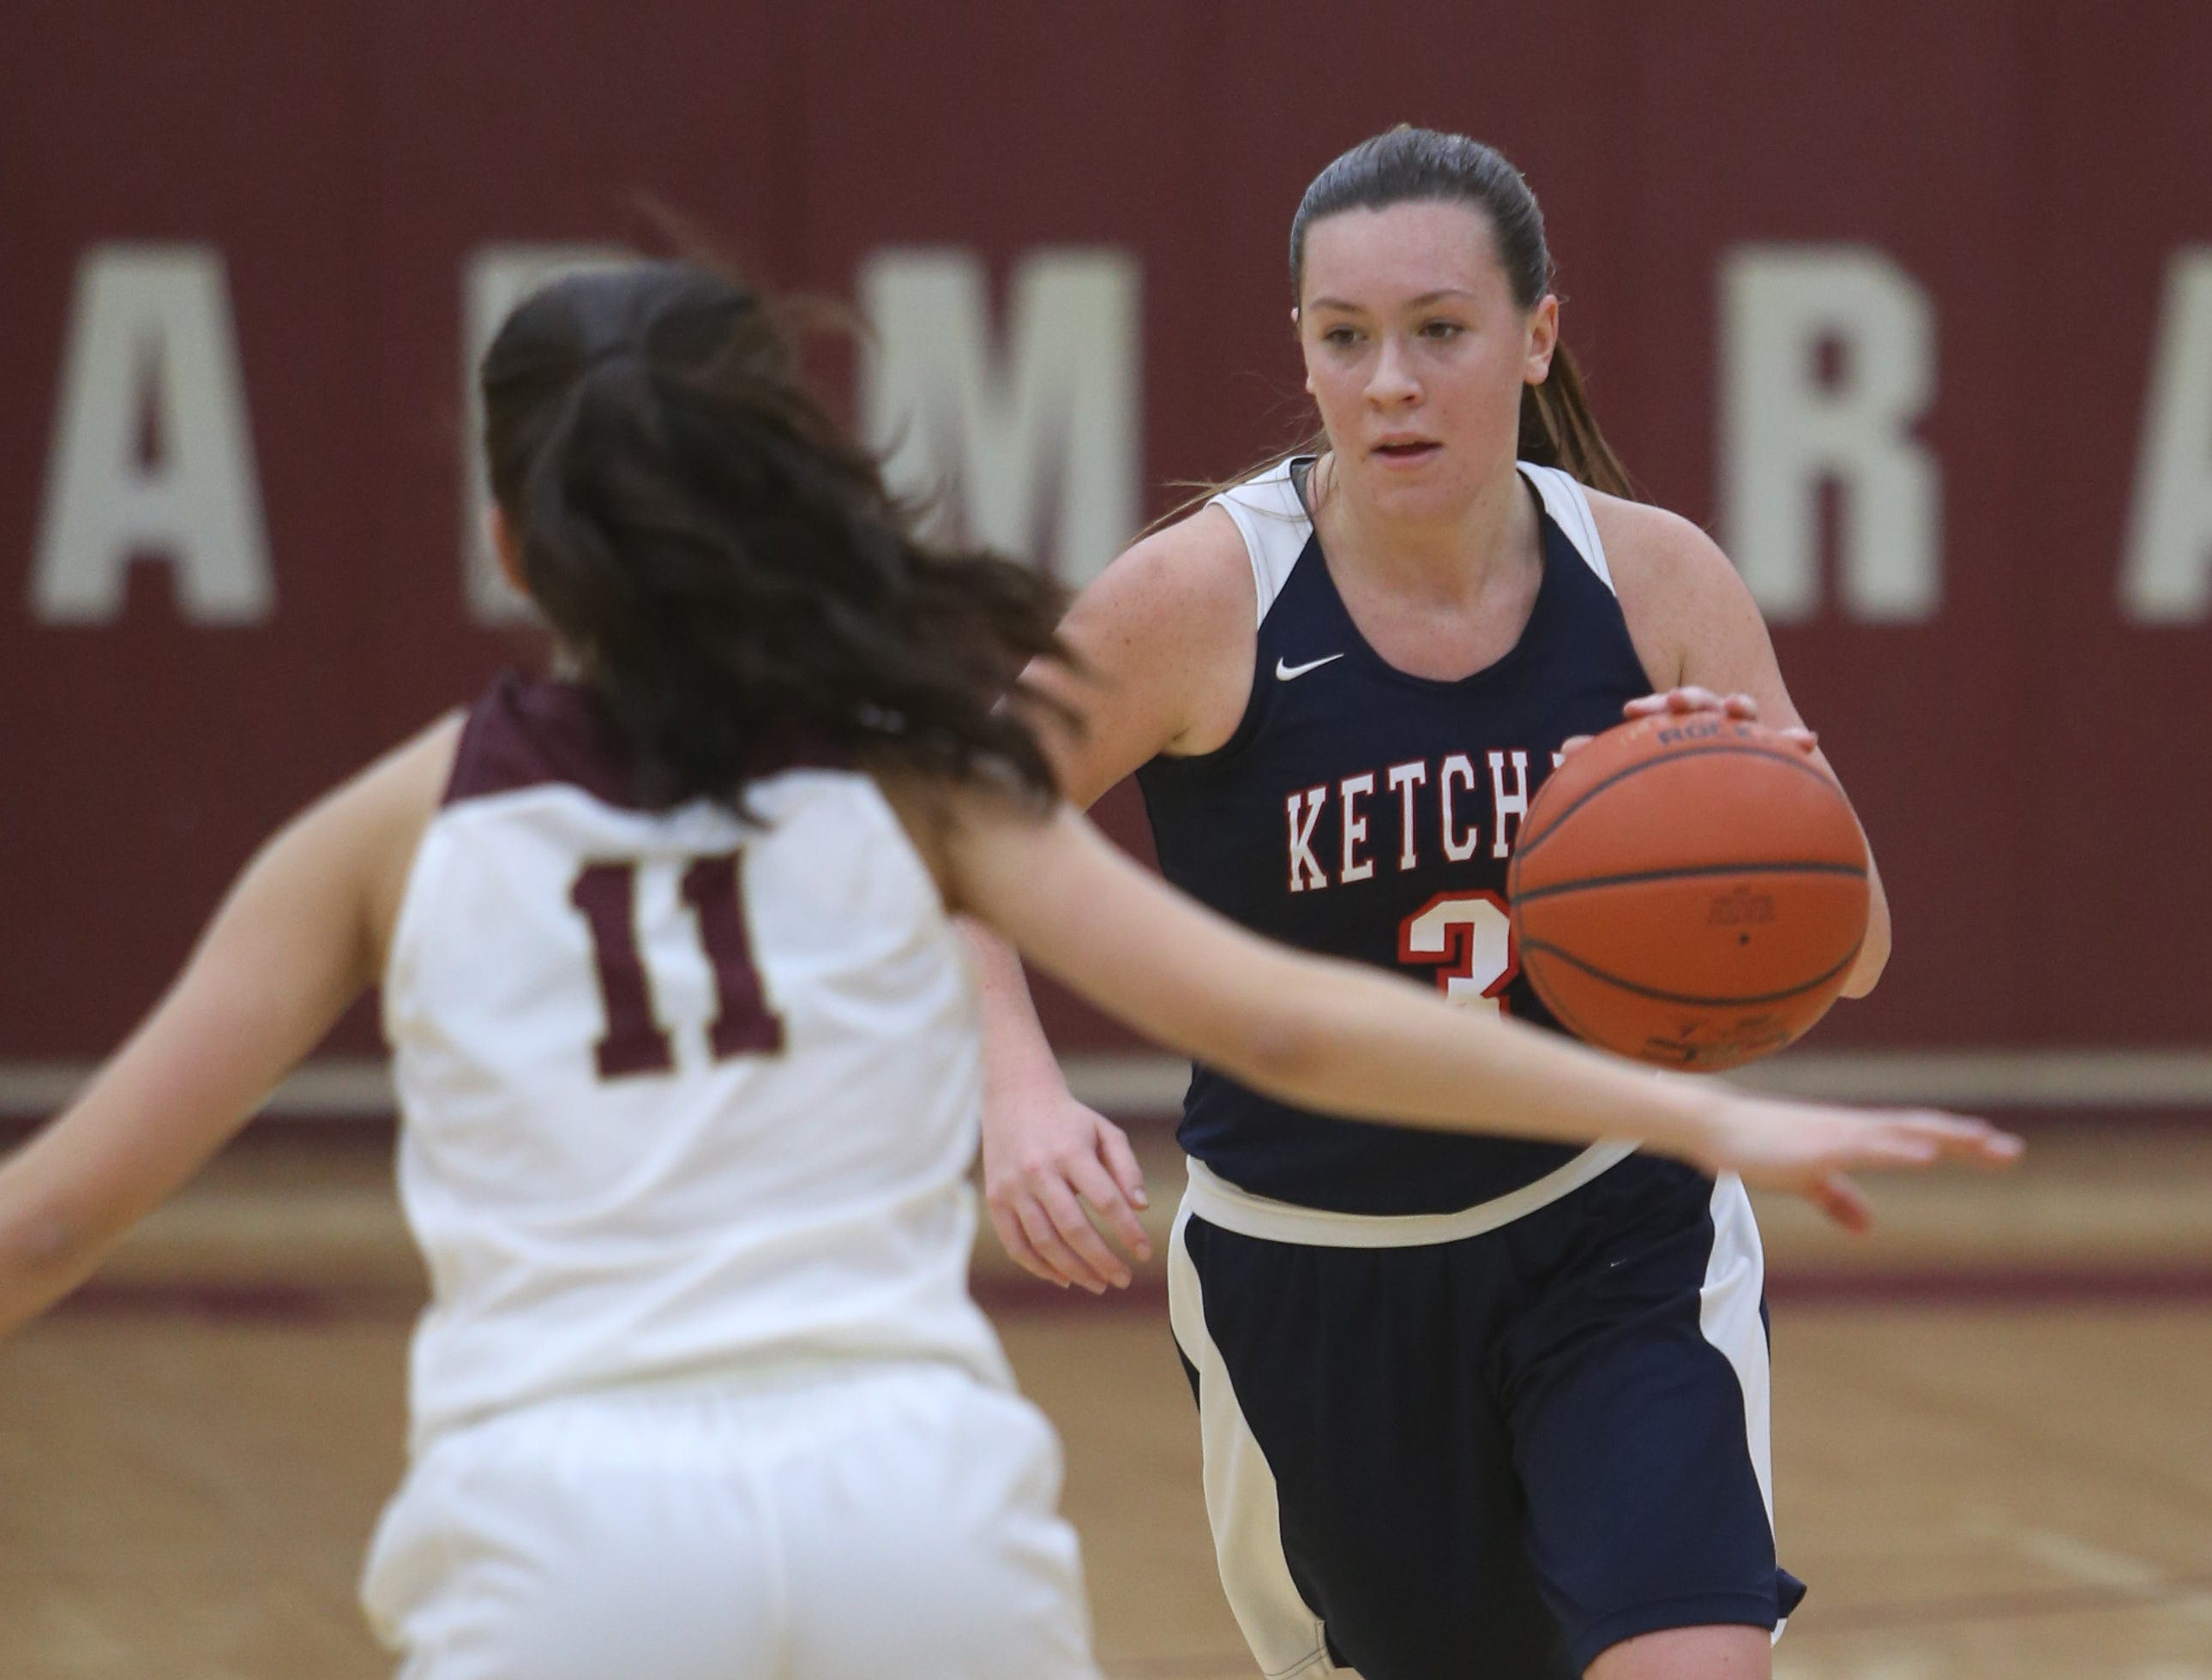 Ketcham's Katie Wall evades Arlington's Camille Loussedes during Wednesday's game in Freedom Plains on February 6, 2019.